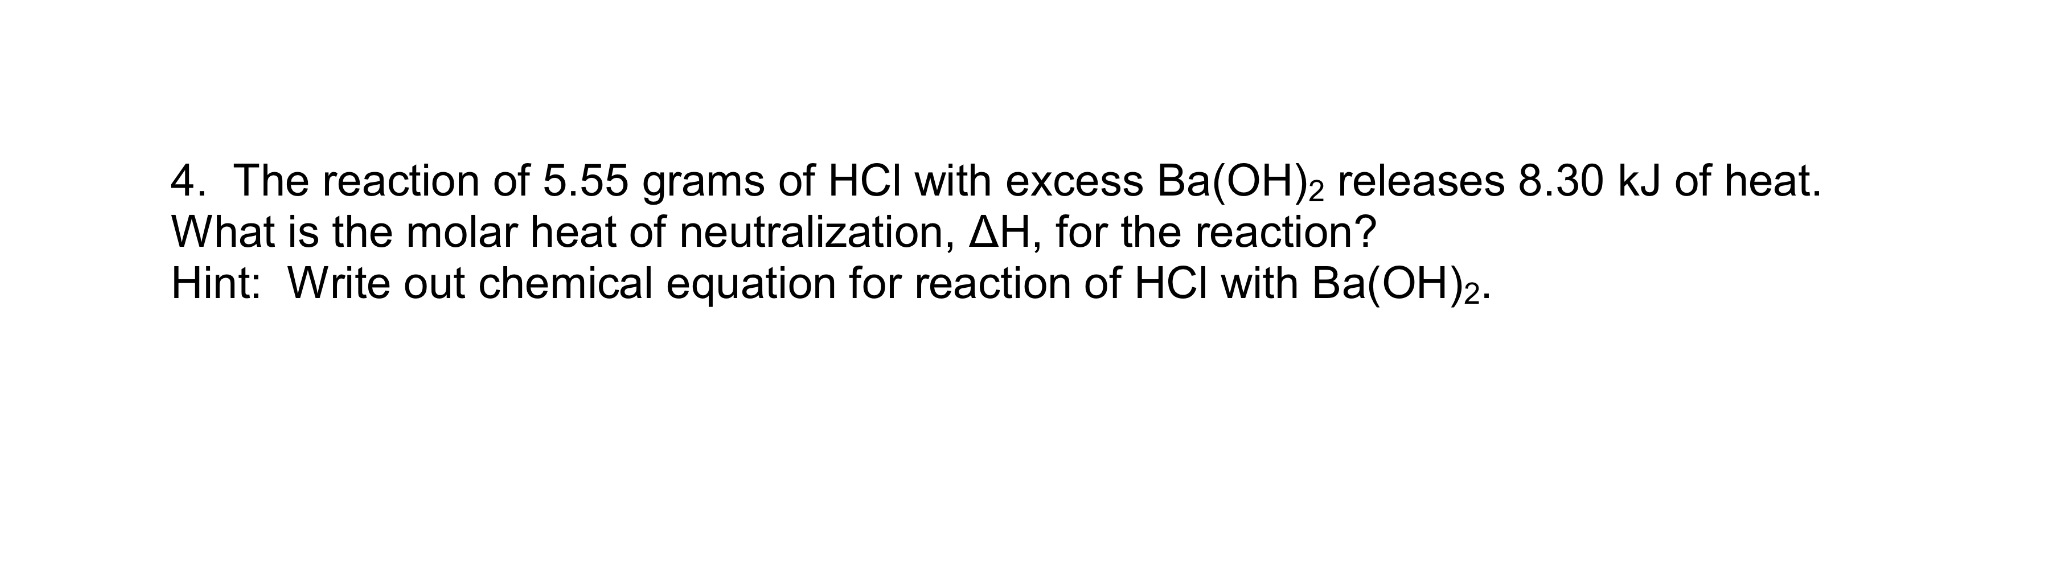 solved the reaction of 555 grams of hcl with excess bao